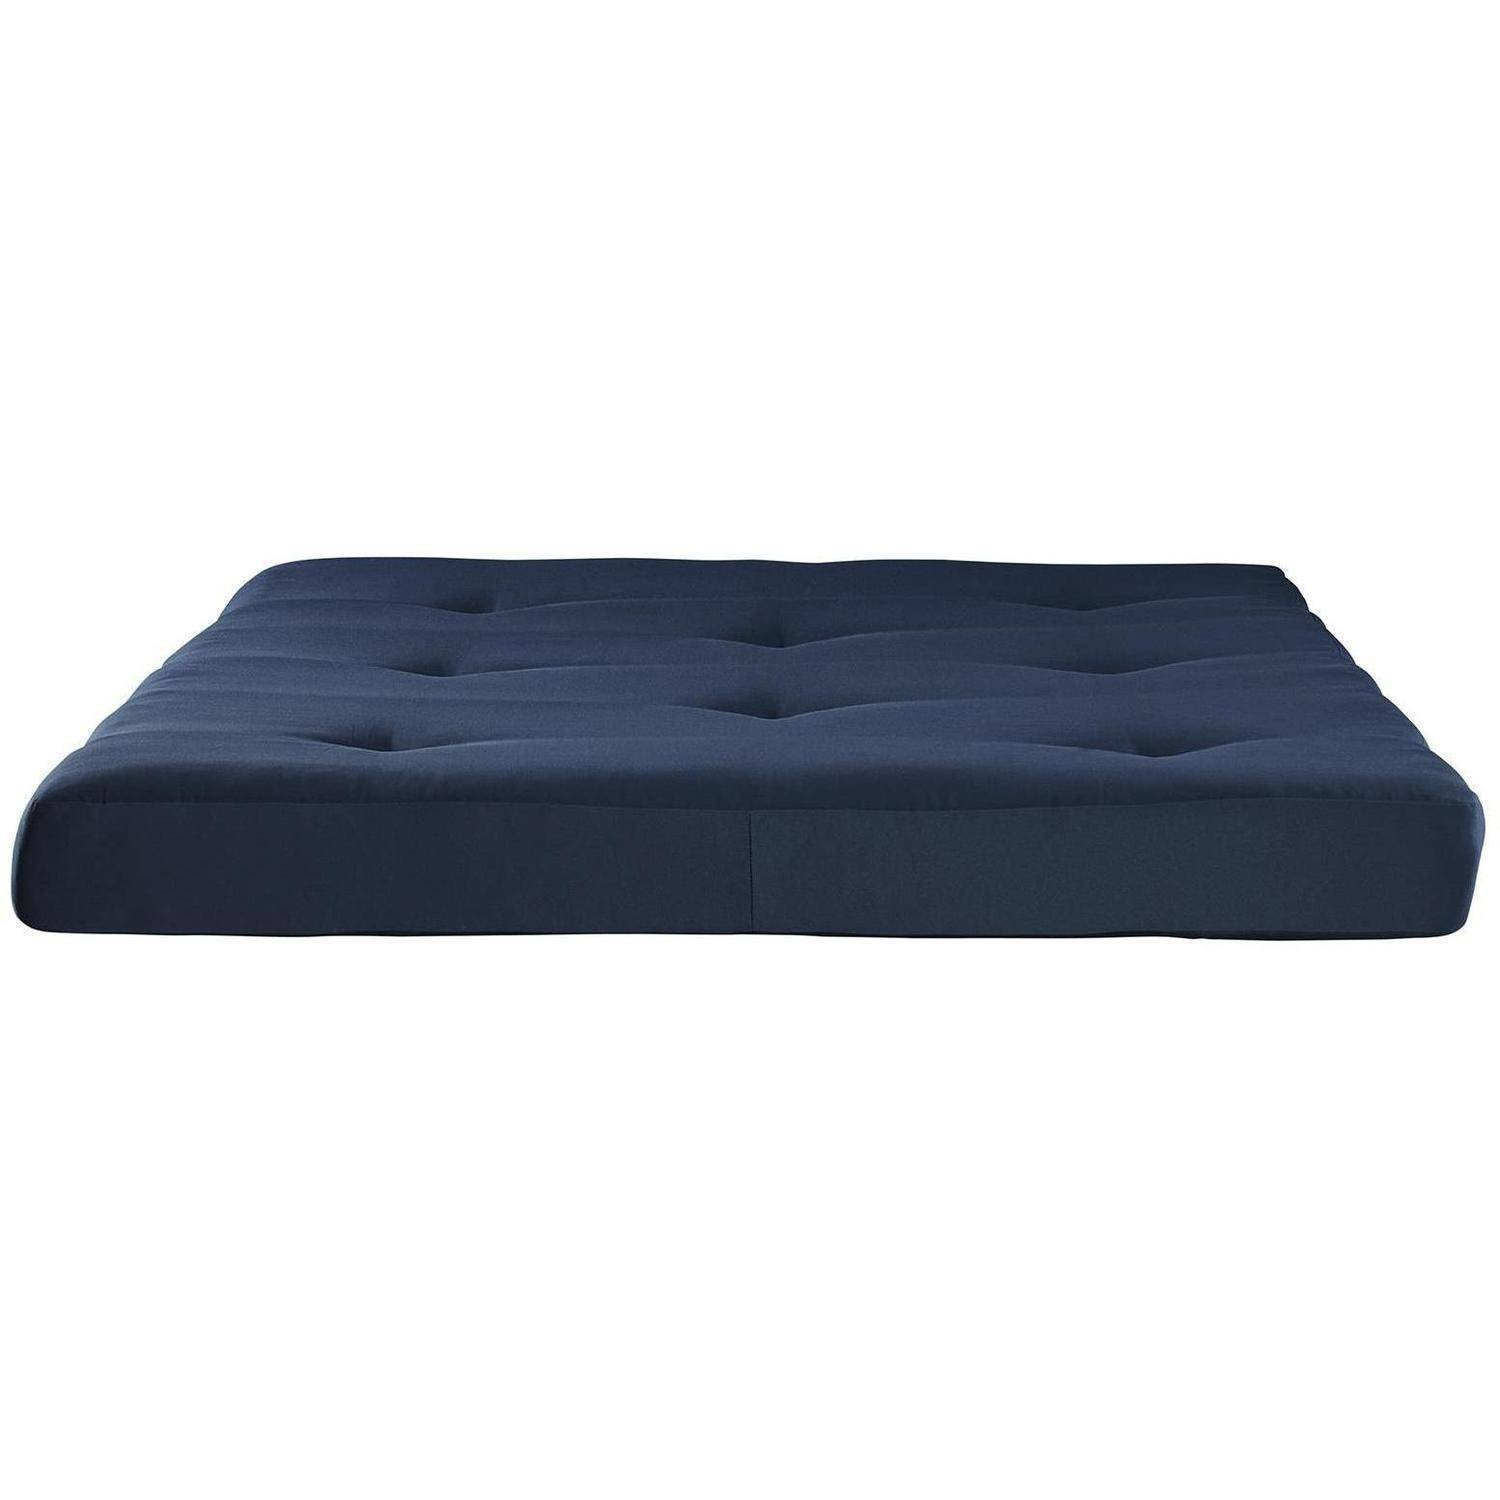 Mainstays 6'' Tufted Futon Mattress ONLY- Blue by La Rosticceria